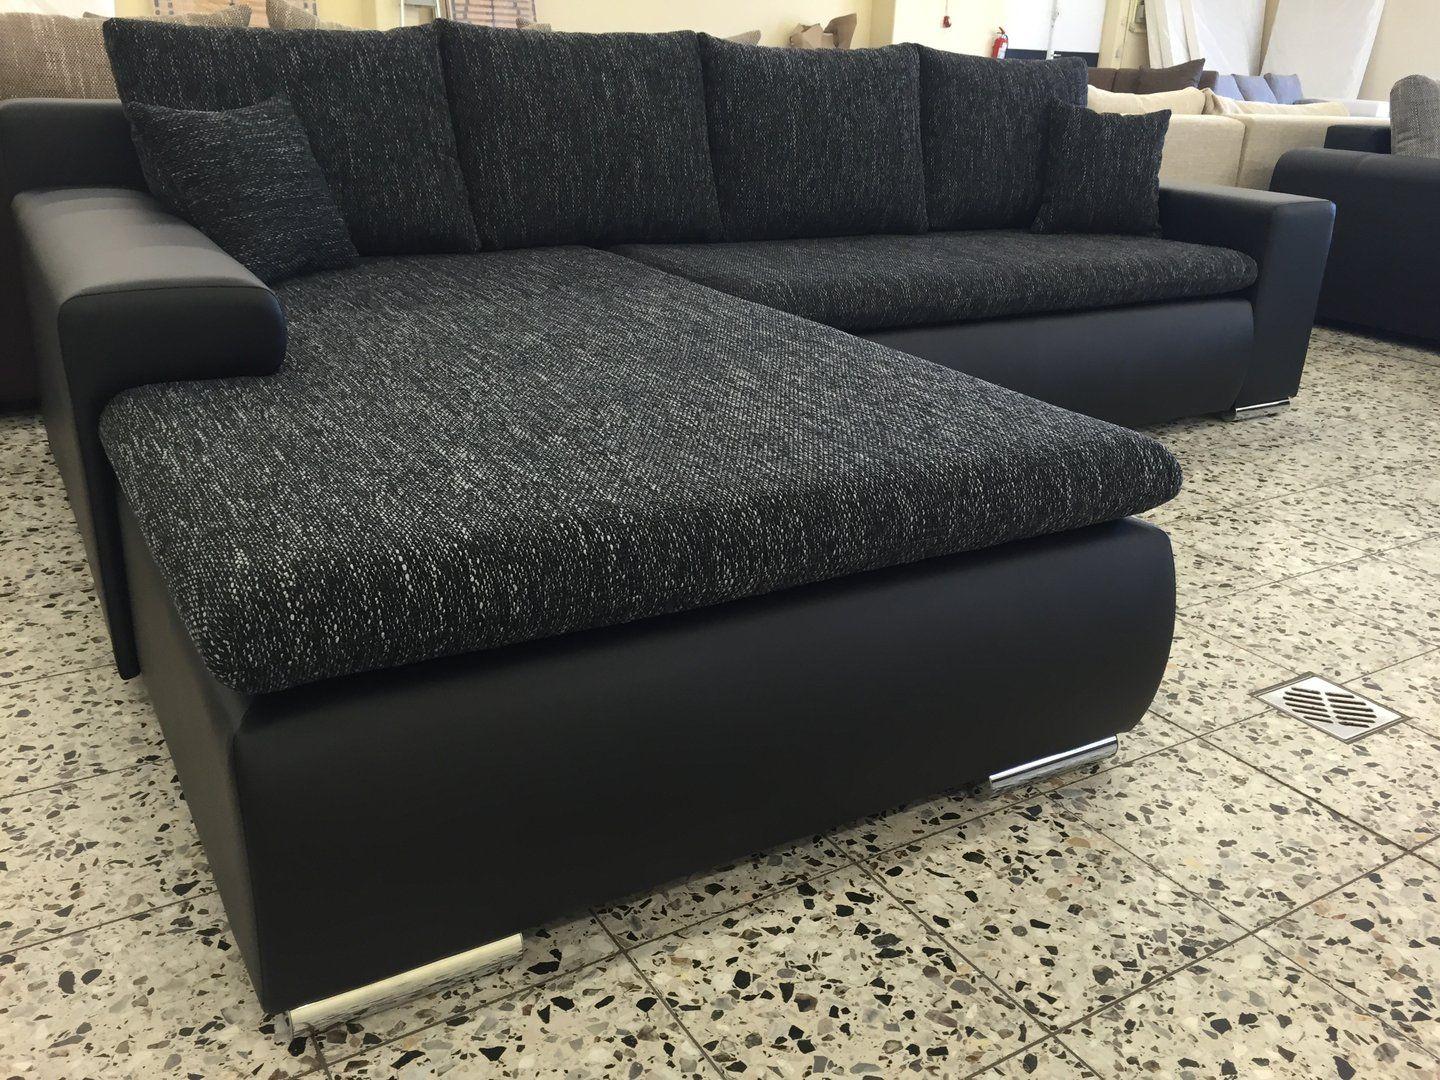 70 Quoet Schlafcouch L Form